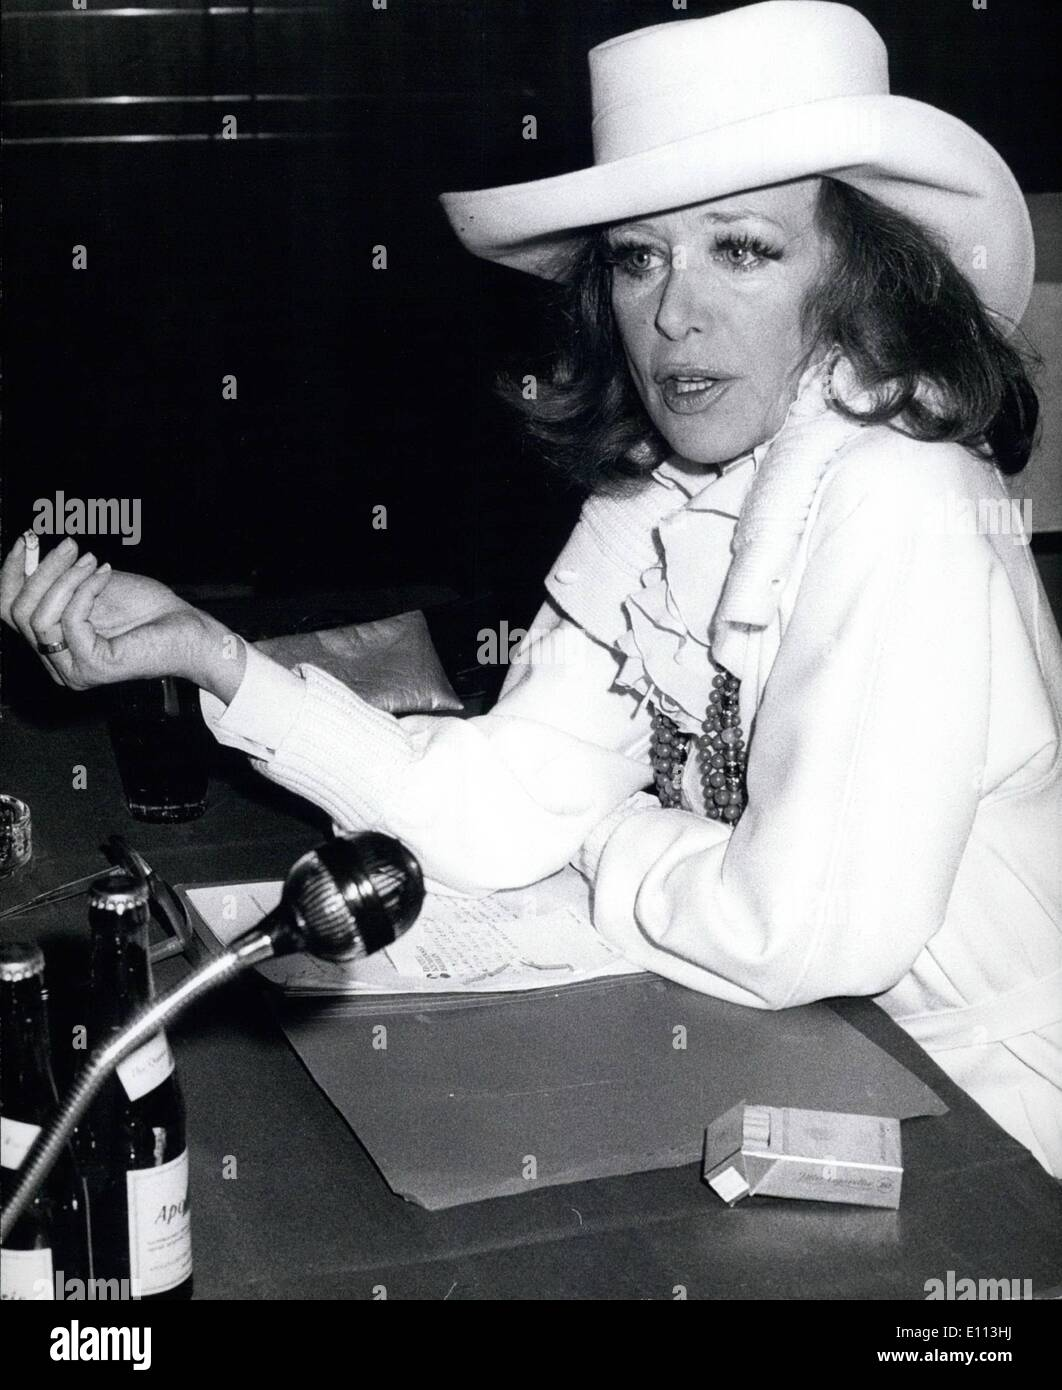 Oct. 10, 1975 - Frankfurt Book Fair Until October 14th 1975 - Press Conference With Hildegard Knef: Hildegard Knef, the well known German film star and singer, gave a press conference at the Frankfurt Book Fair (picture) on the occasion of the release of her second book called ''The Judgement''. The this book Hildegard Knef describes her flight against cancer from which she is suffering, as well as the situation in the hospitals. The annual Book Fair in Frankfurt is in full swing. 3955 annual publishing houses from 63 countries show their collections of books, altogether 251 - Stock Image